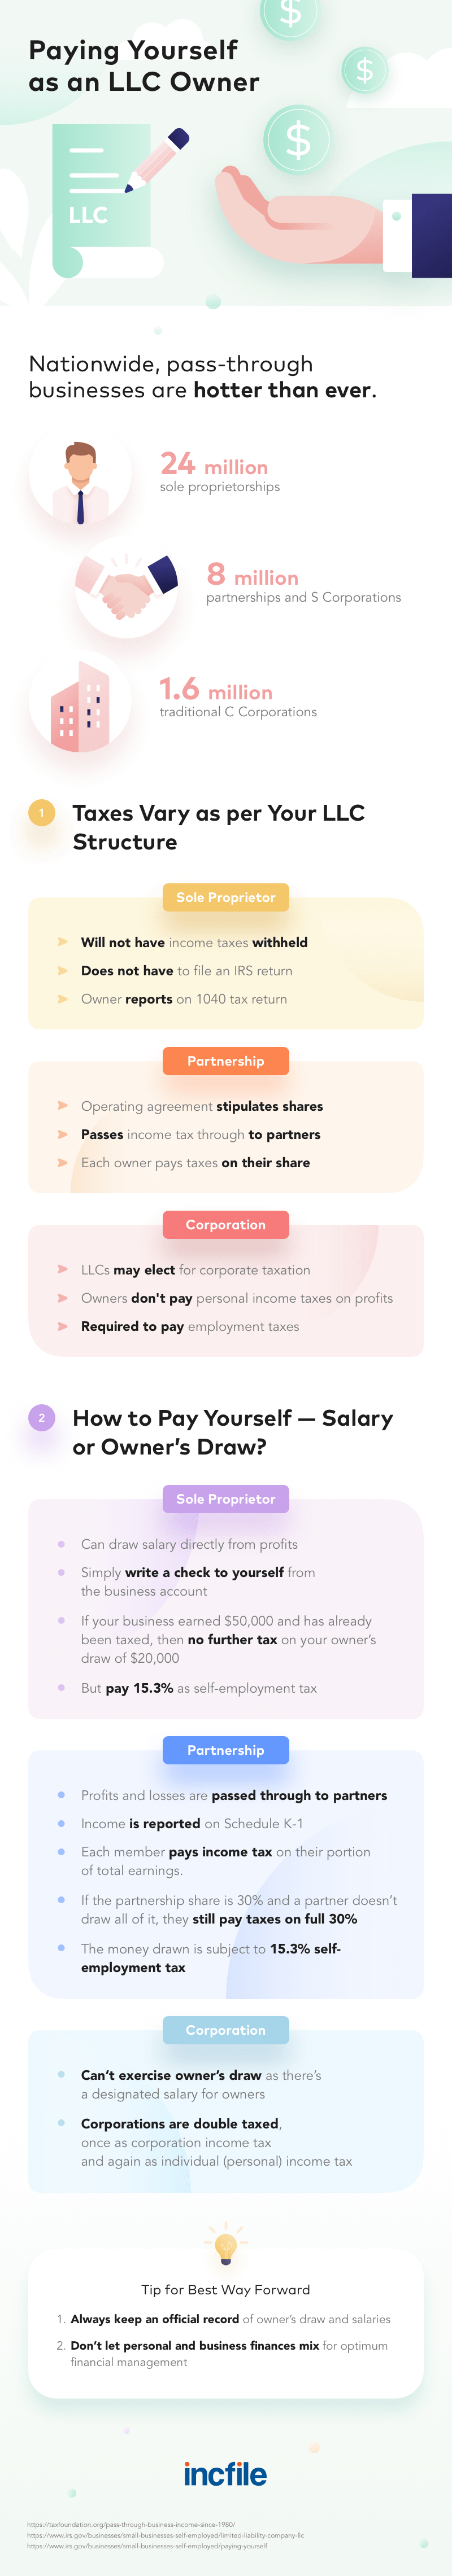 llc-paying-yourself-infographic-plaza